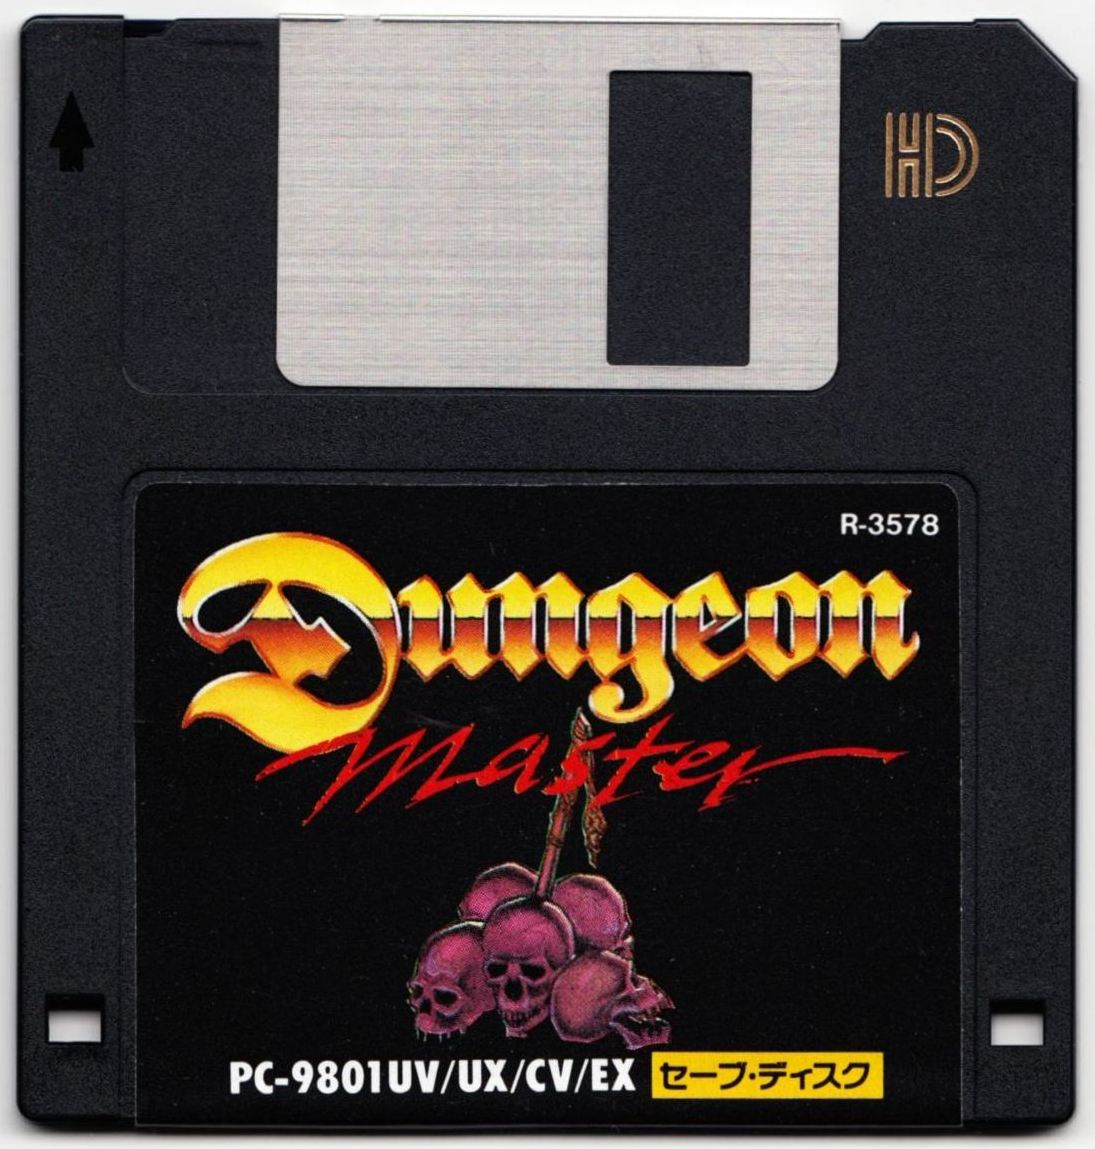 Game - Dungeon Master - JP - PC-9801 - 3.5-inch - Save Disk - Front - Scan